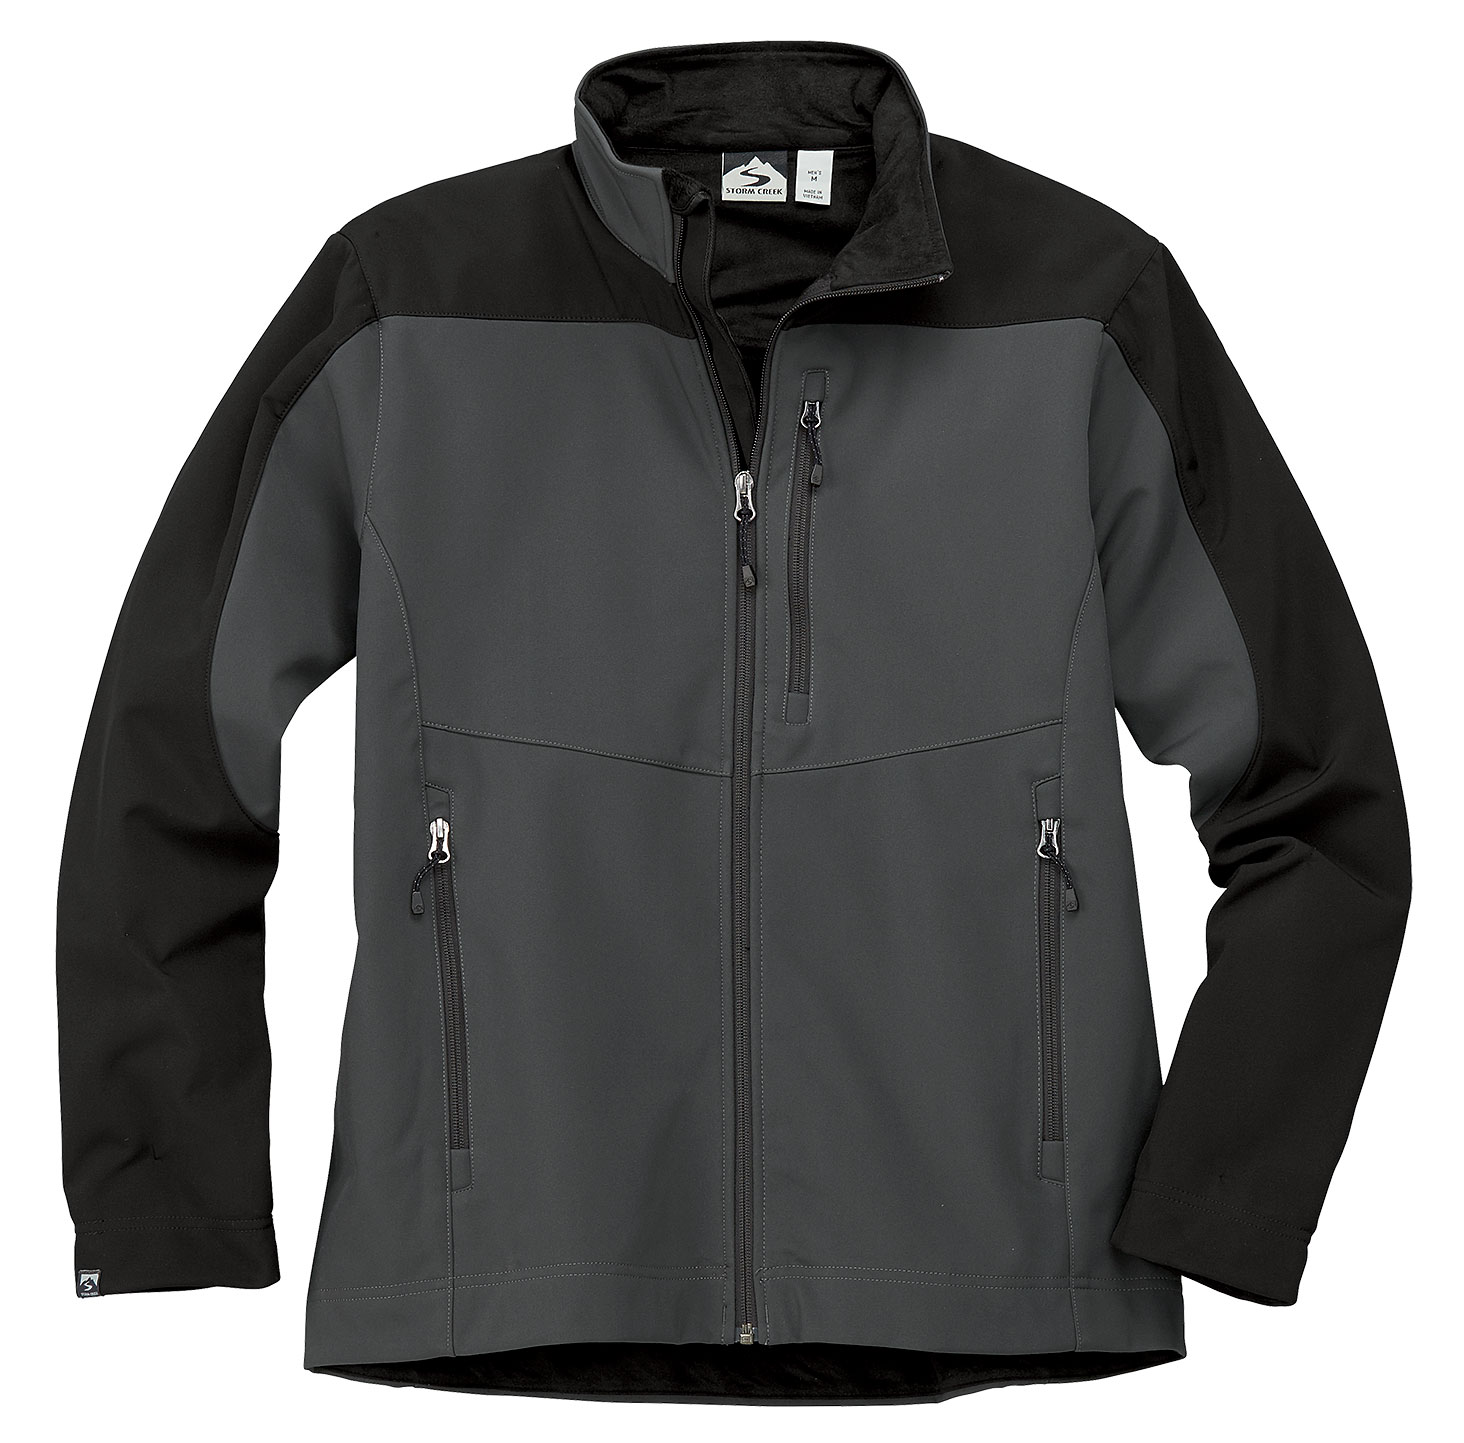 Storm Creek Sean - Mens Velvet lined Soft Shell Jacket